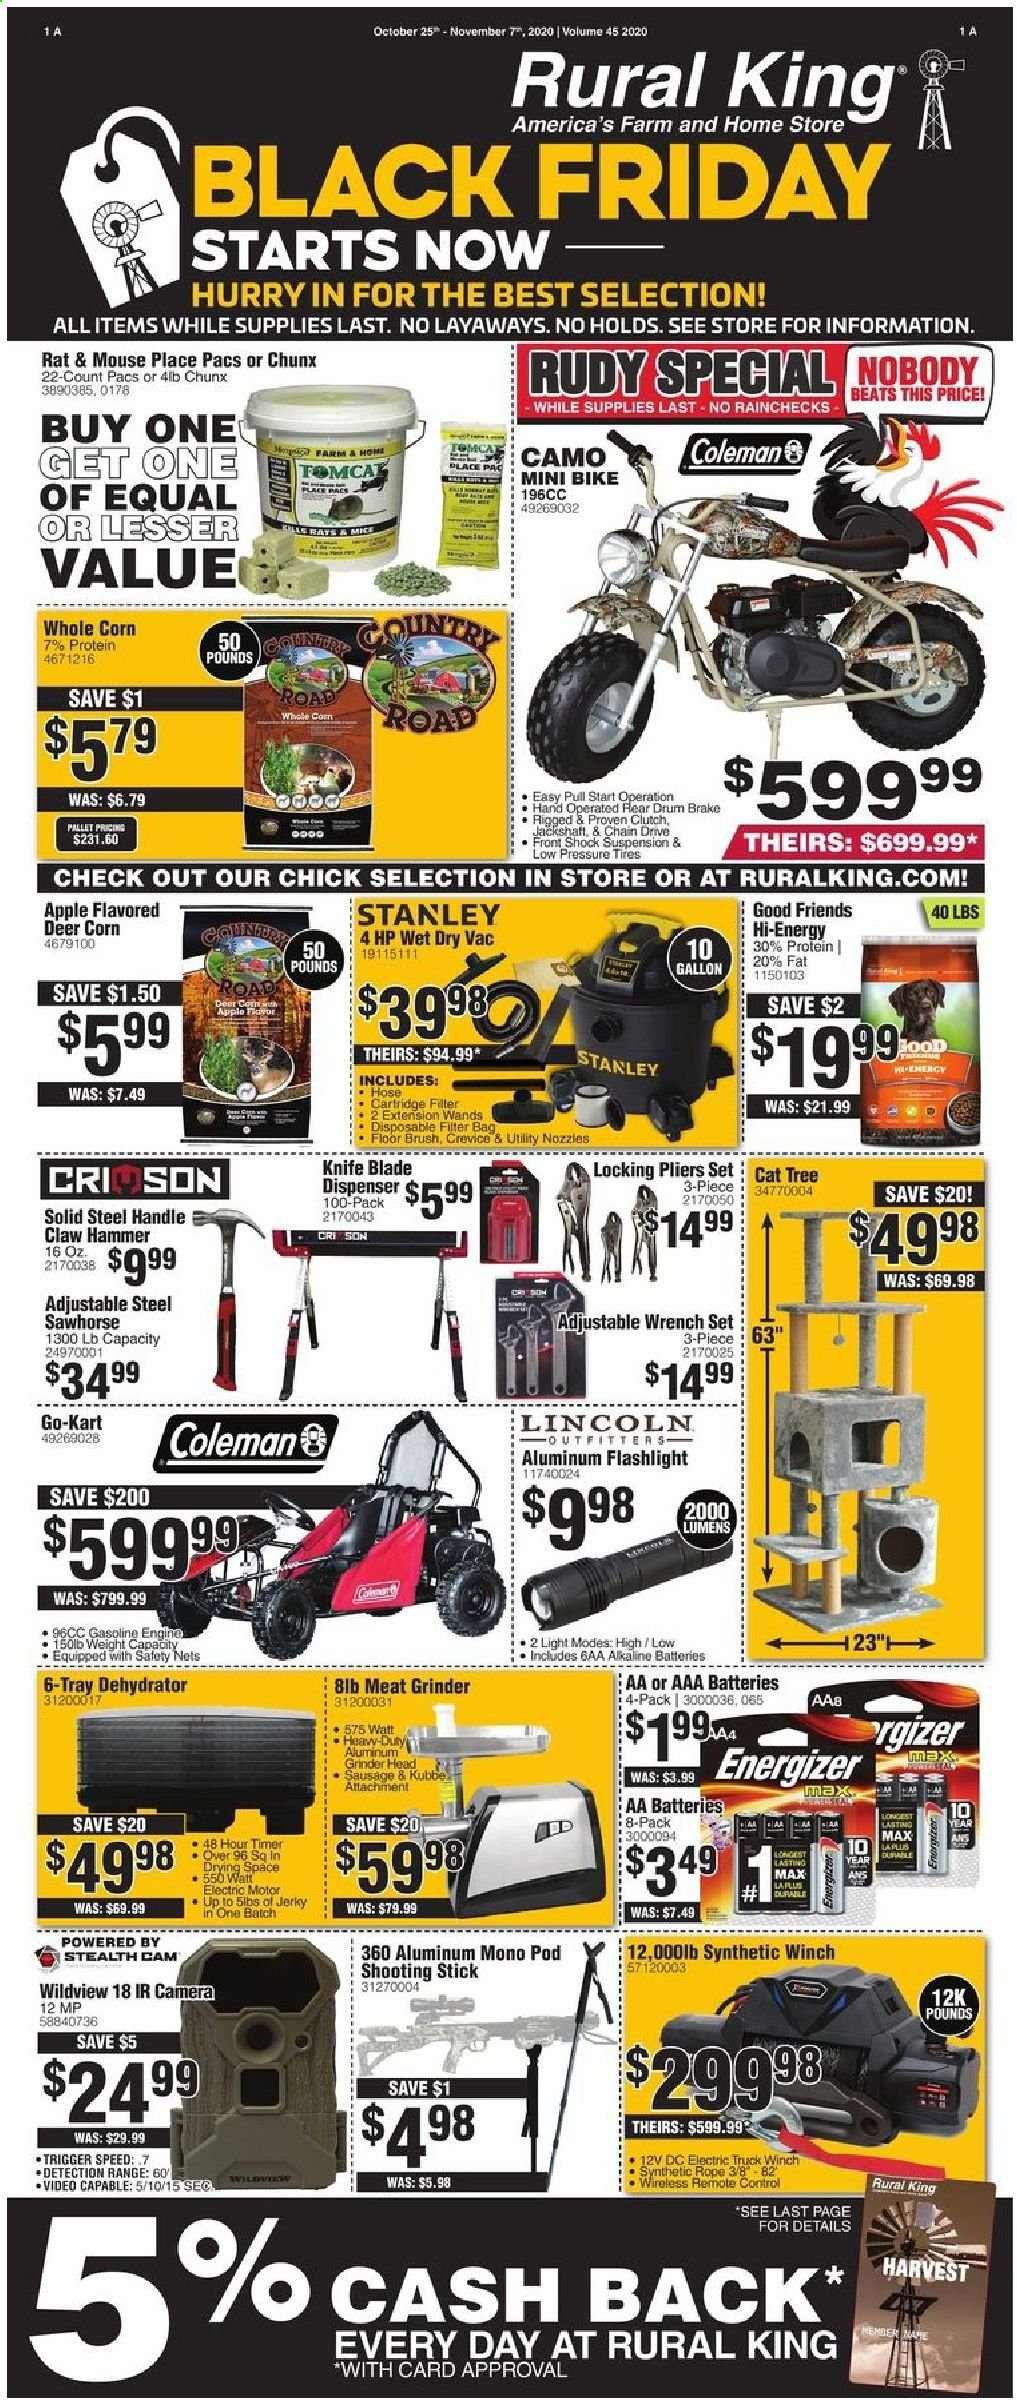 Rural King Flyer - 10.25.2020 - 11.07.2020 - Sales products - apples, bag, bike, brush, camera, corn, deer, dehydrator, dispenser, energizer, flashlight, knife, mouse, remote control, sausage, solid, stanley, stealth cam, stick, timer, tray, tree, truck, handles, head, hp, jerky, pliers, protein, hammer, cartridge, wireless, wrench, mini bike, grinder, blade, hose, meat, tires, control, apple, black friday, aaa batteries, aa batteries, beats. Page 1.